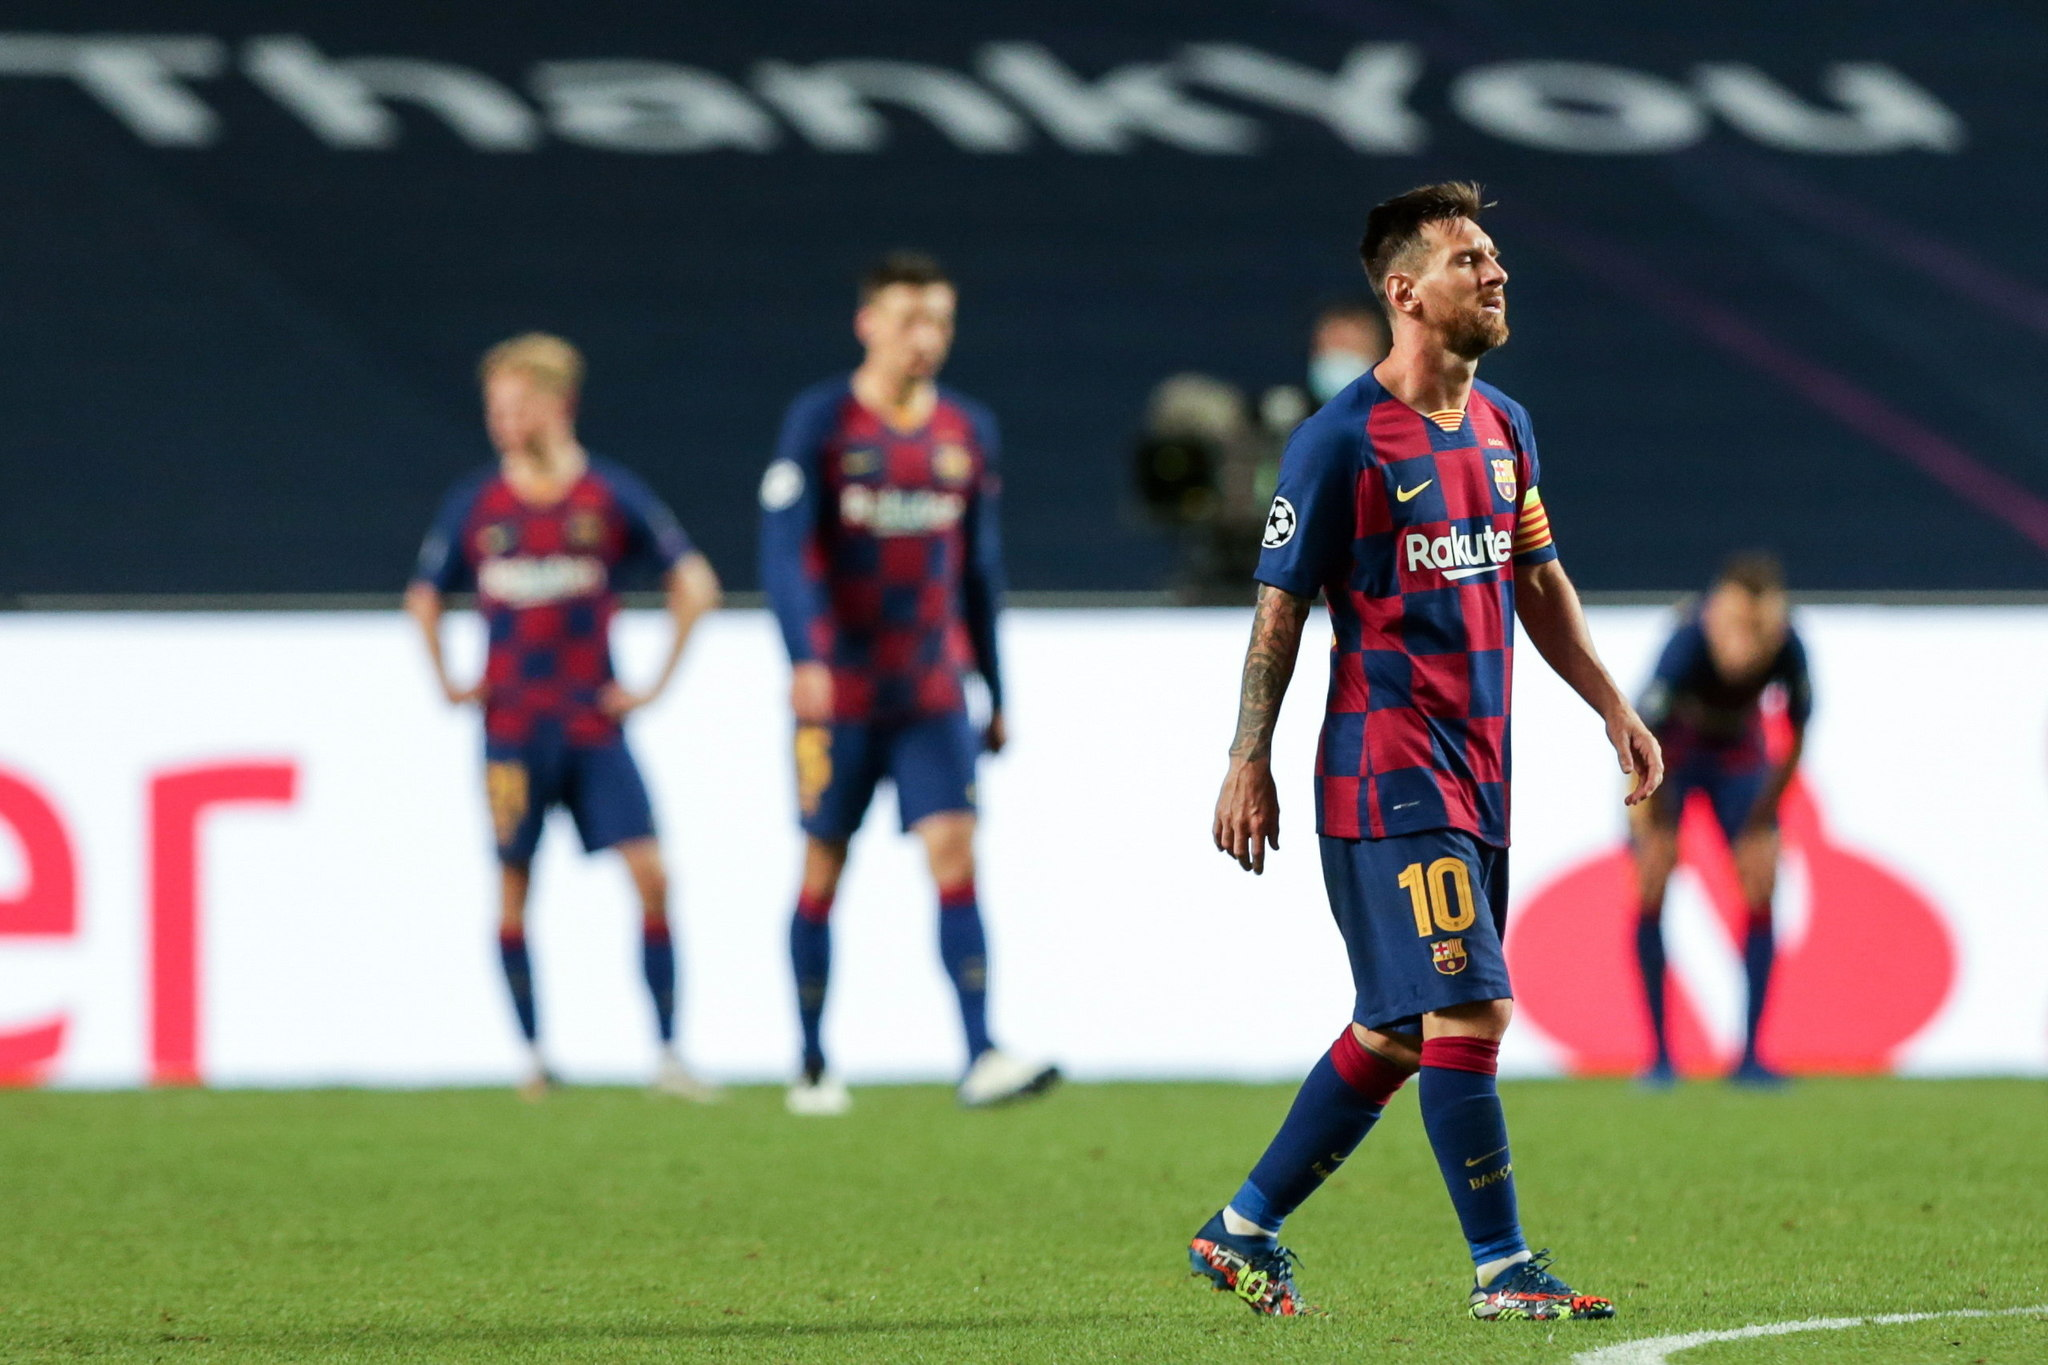 Lisbon (Portugal), 14/08/2020.- FC Barcelonas Lionel Messi shows his dejection at the end of the UEFA Champions League quarter final soccer match FC Barcelona vs lt;HIT gt;Bayern lt;/HIT gt; Munich held at Luz Stadium in Lisbon, Portugal, 14 August 2020. (Liga de Campeones, Lisboa) EFE/EPA/TIAGO PETINGA